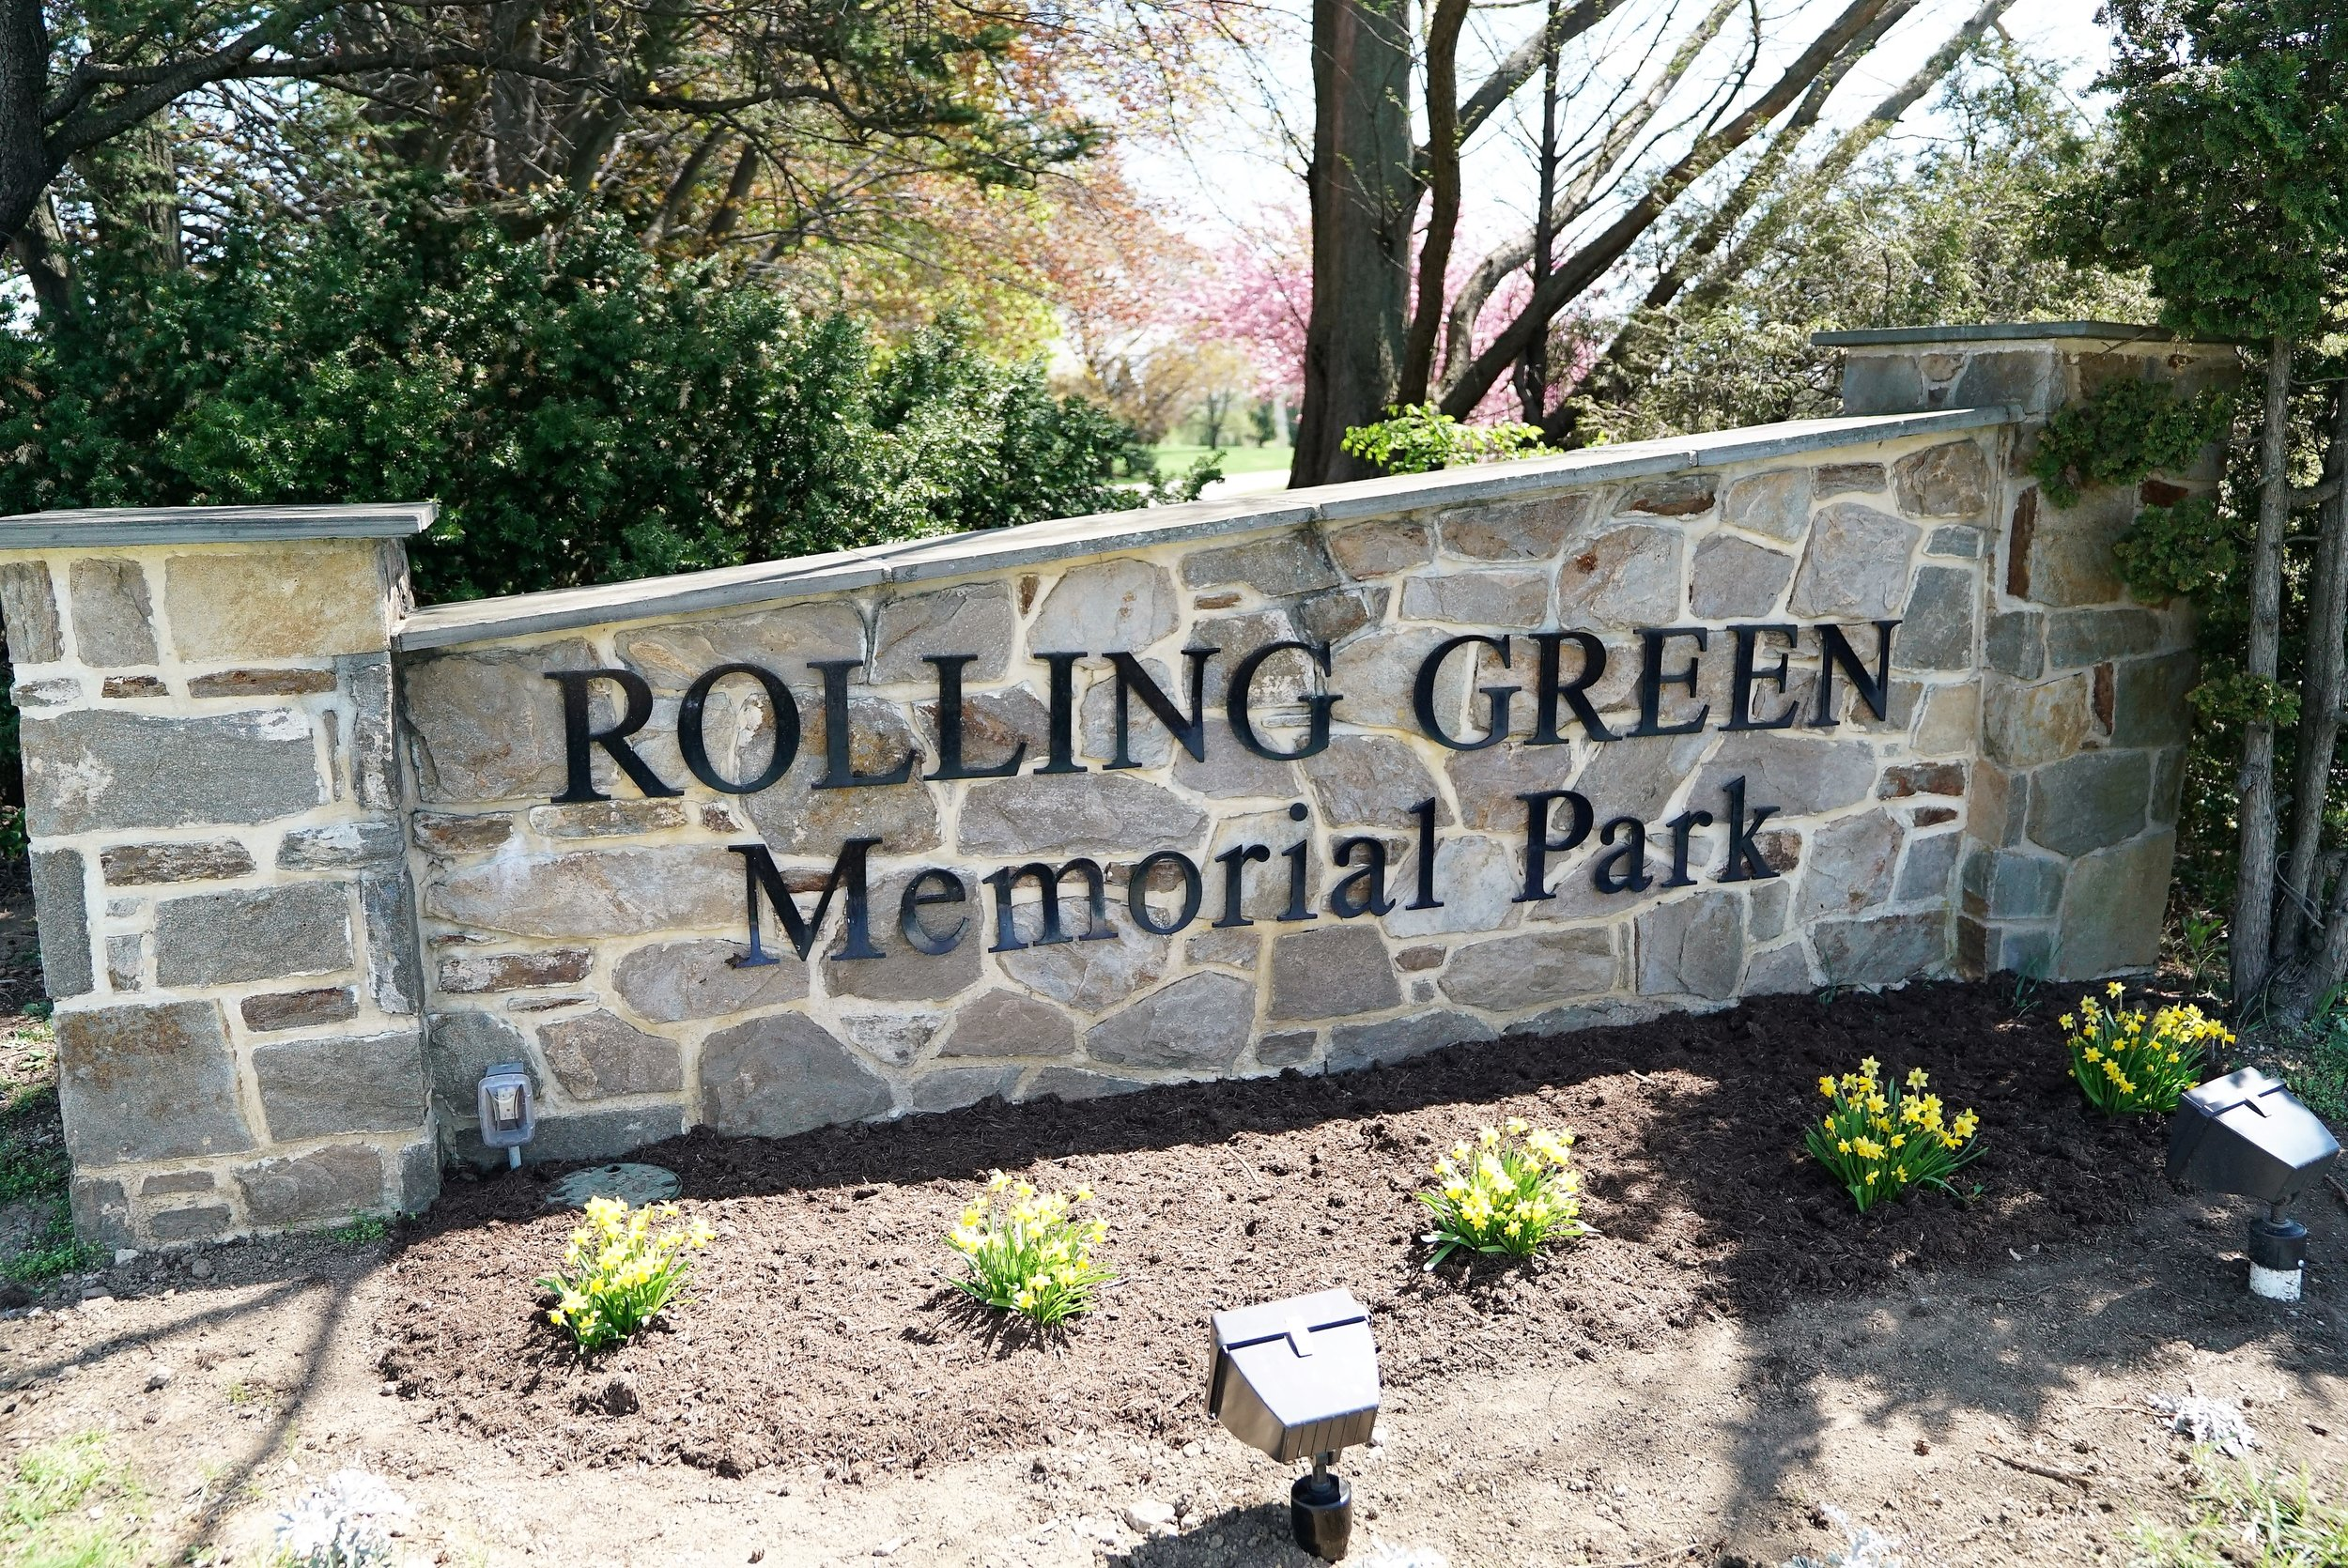 At the entrance to Rolling Green Memorial Park Cemetery in West Chester, Pennsylvania.